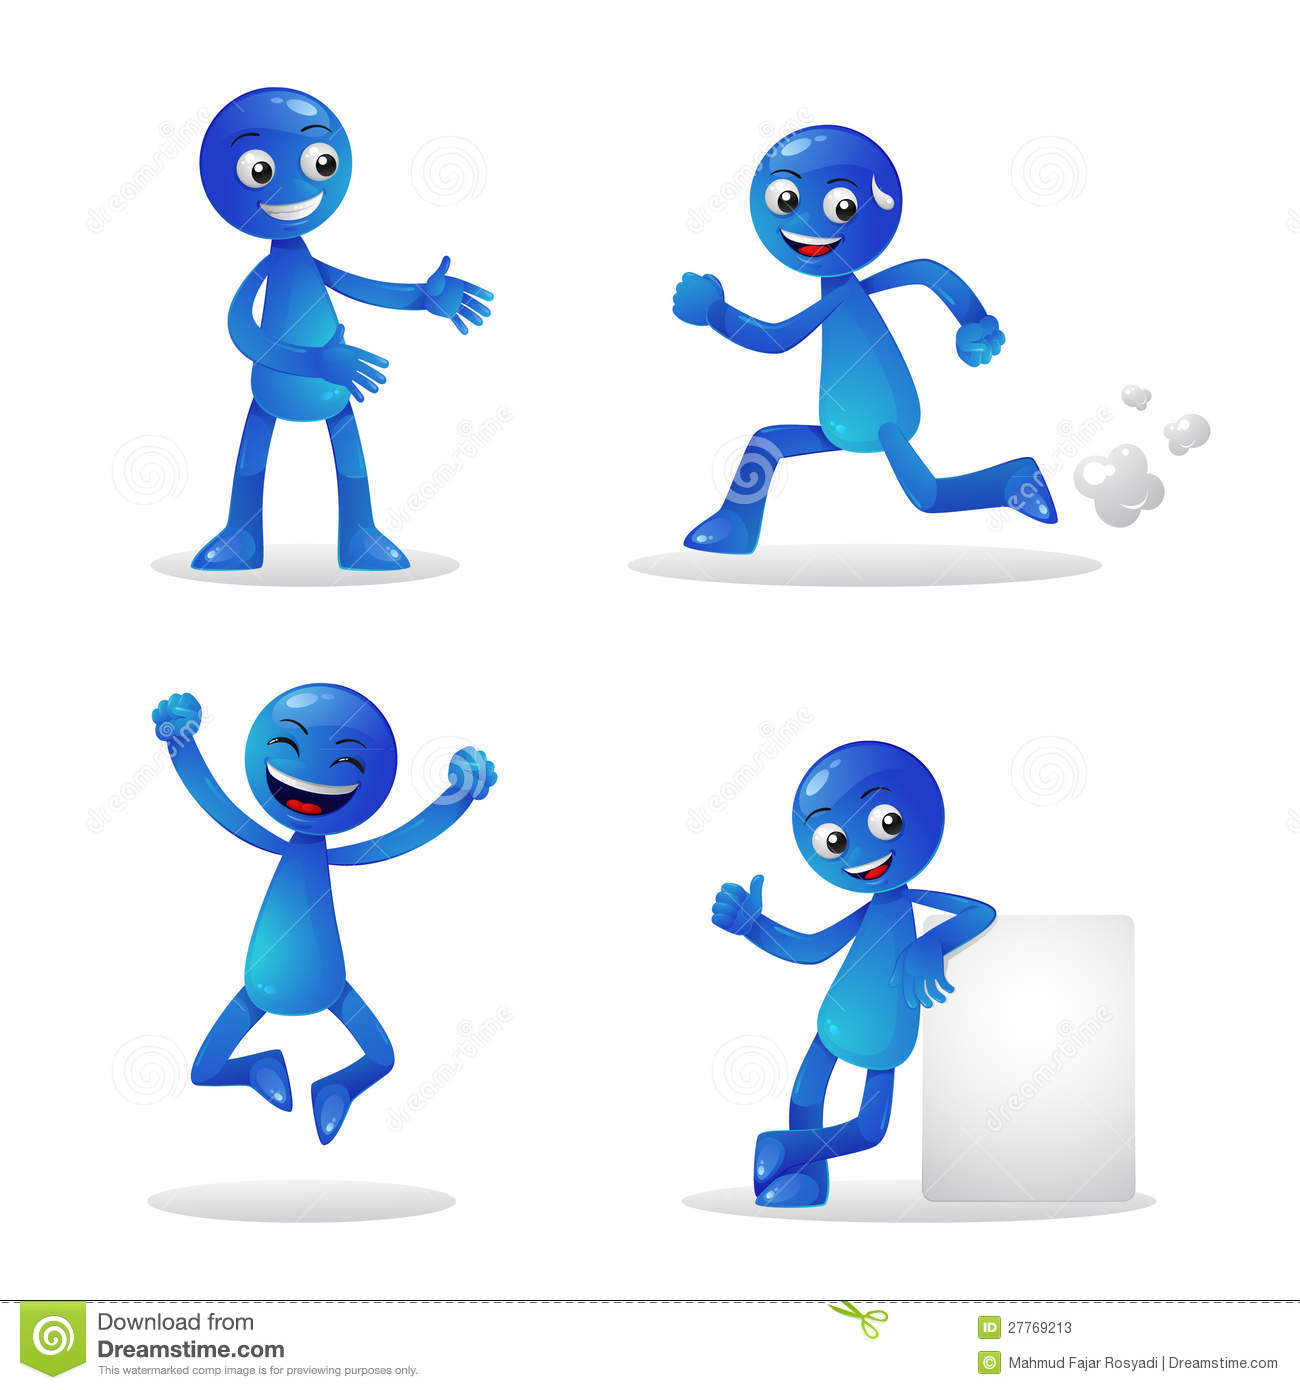 More similar stock images of ` Blue Person Activity 1 `